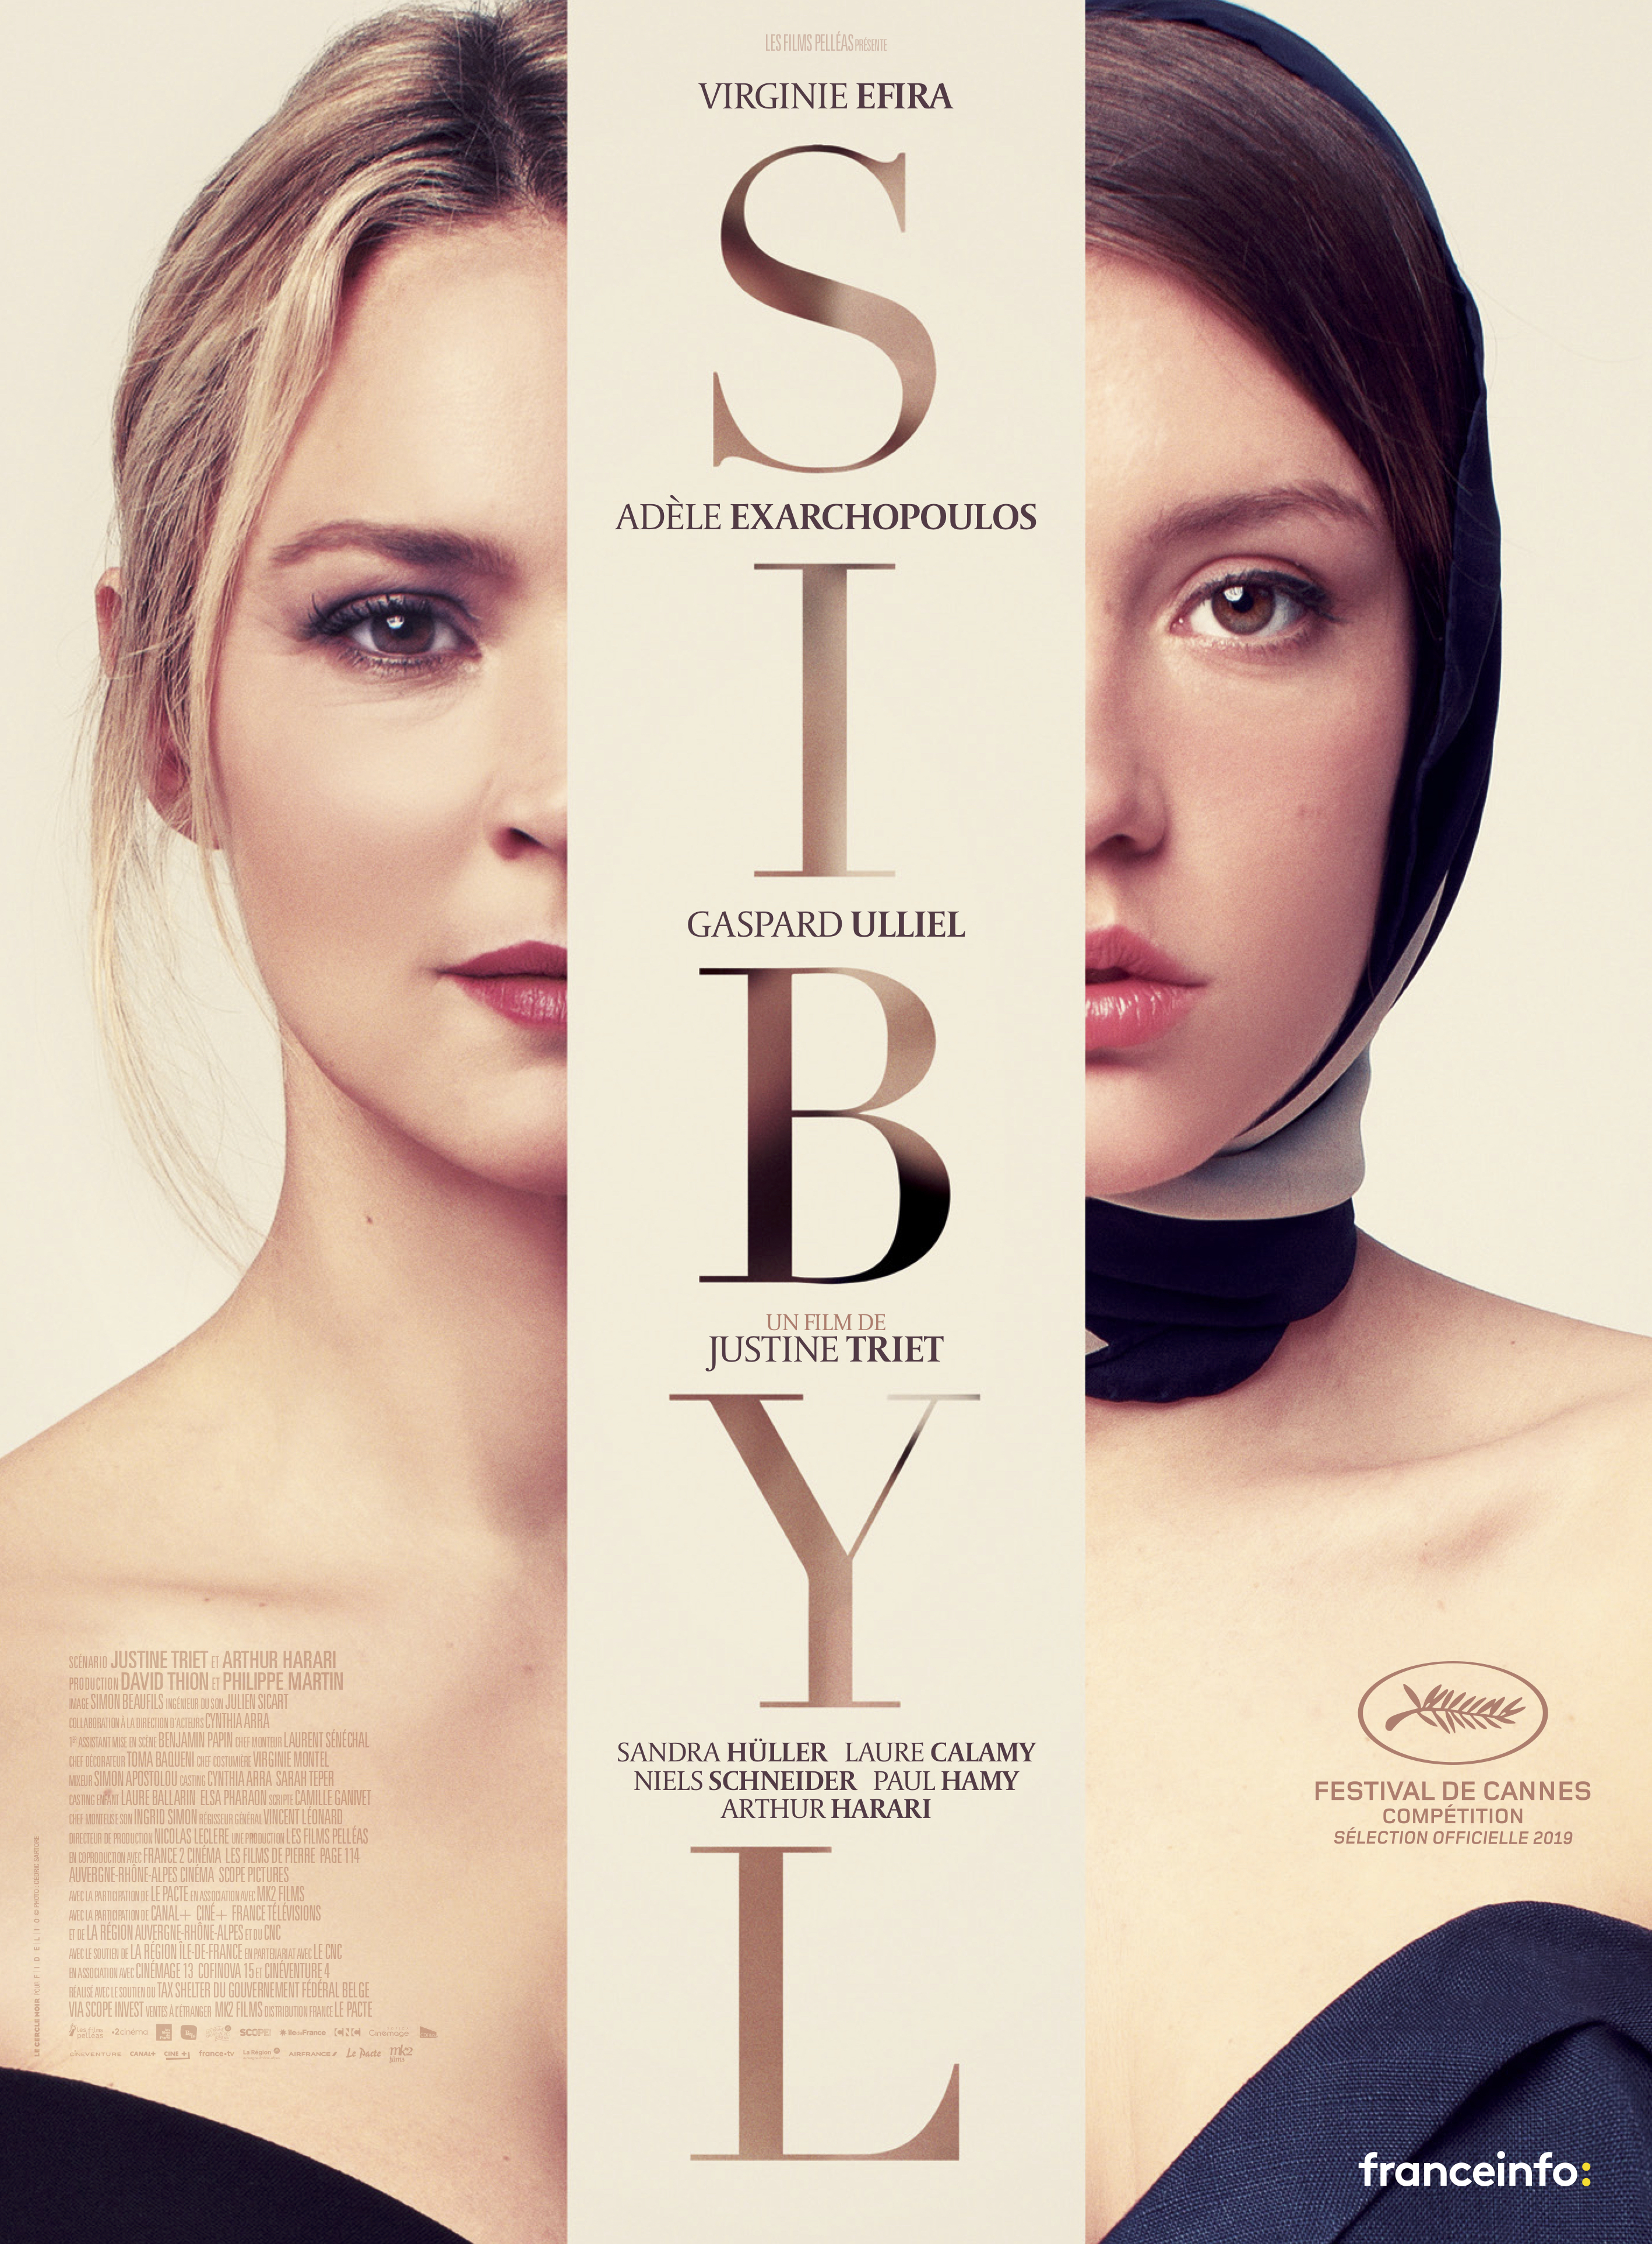 Virginie Efira and Adèle Exarchopoulos in Sibyl (2019)